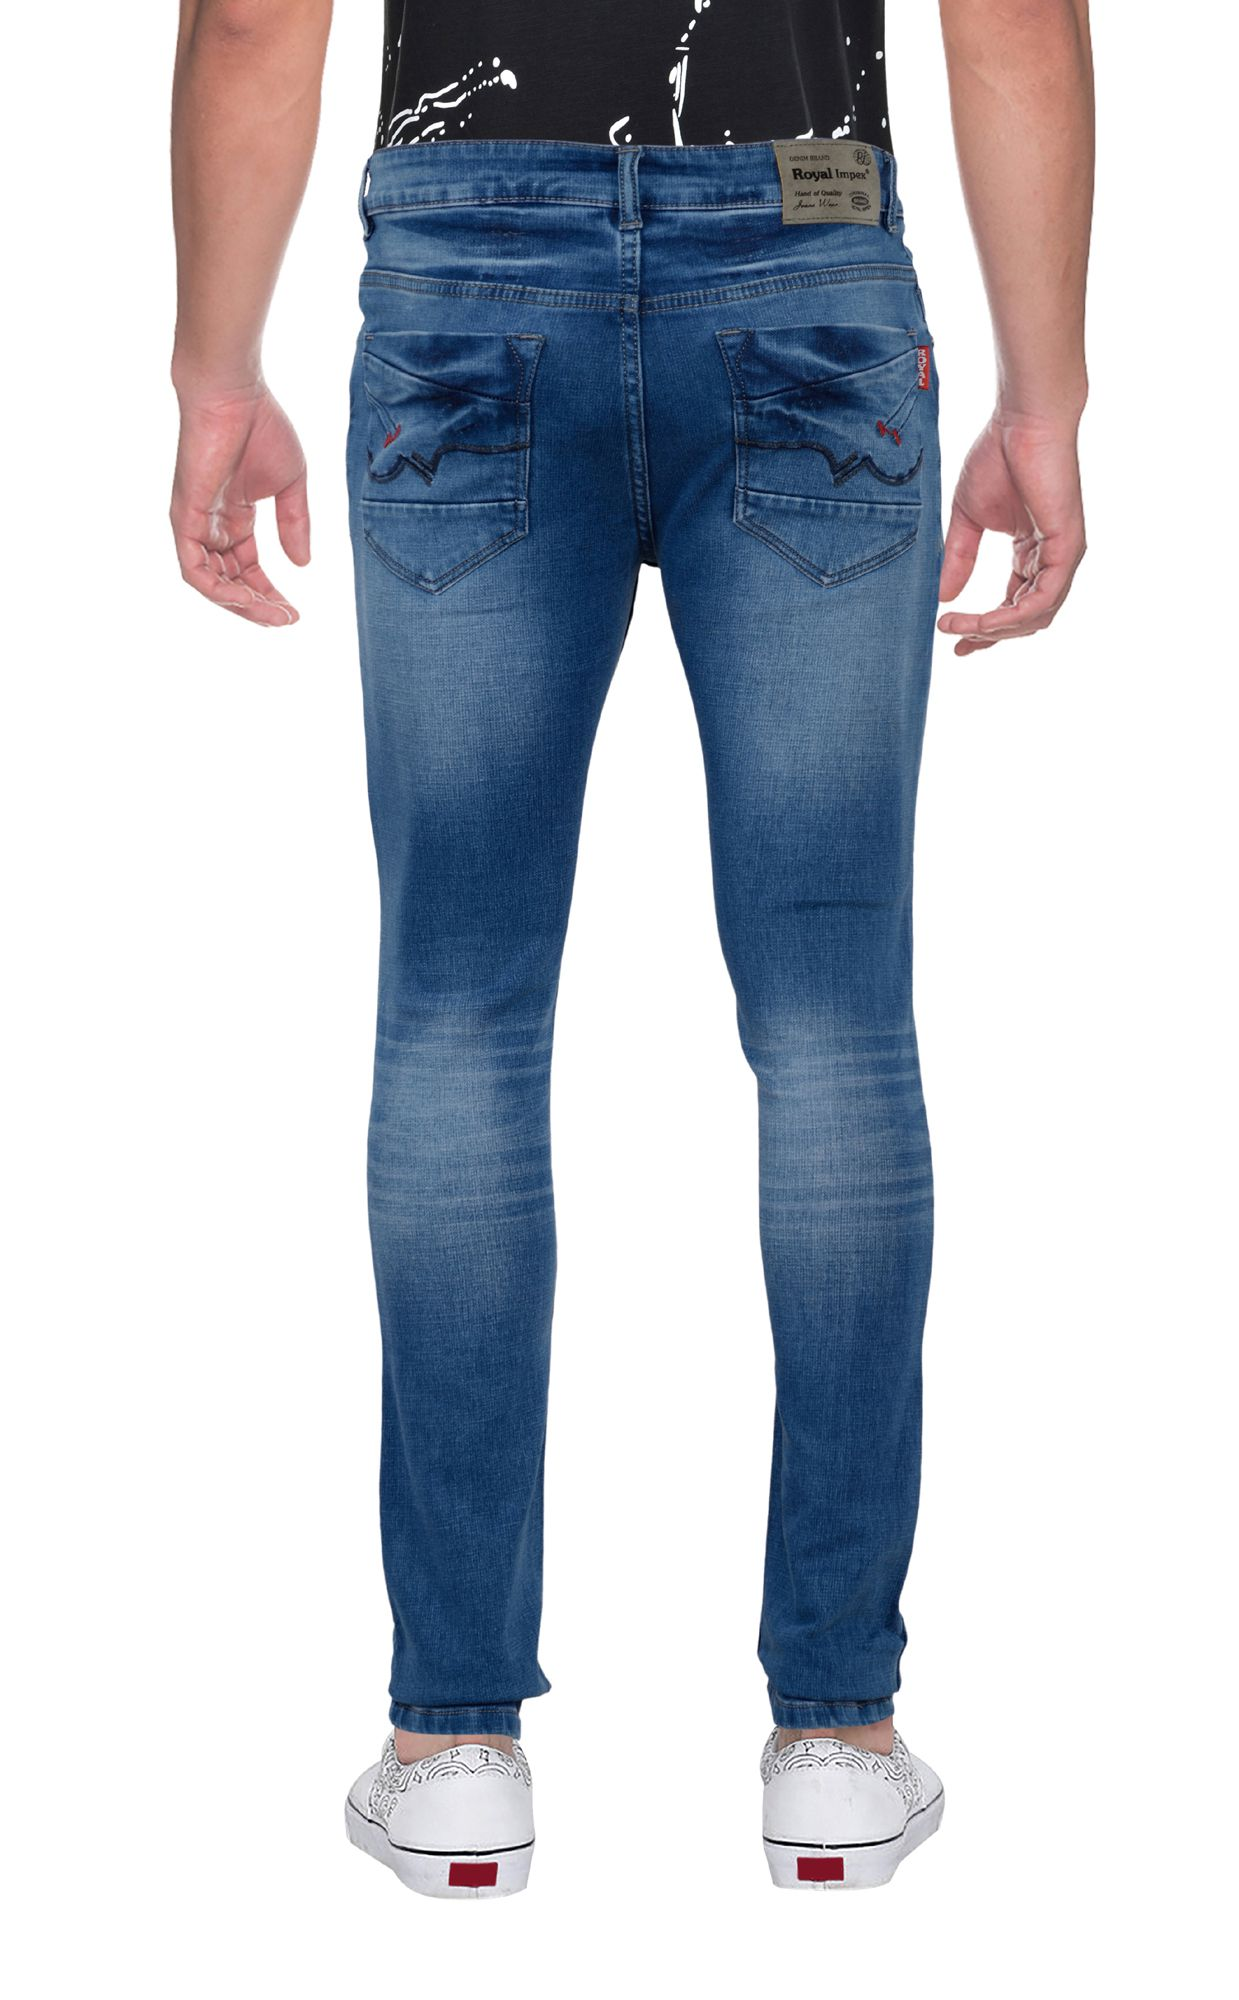 Royal Jeans Blue Slim Jeans